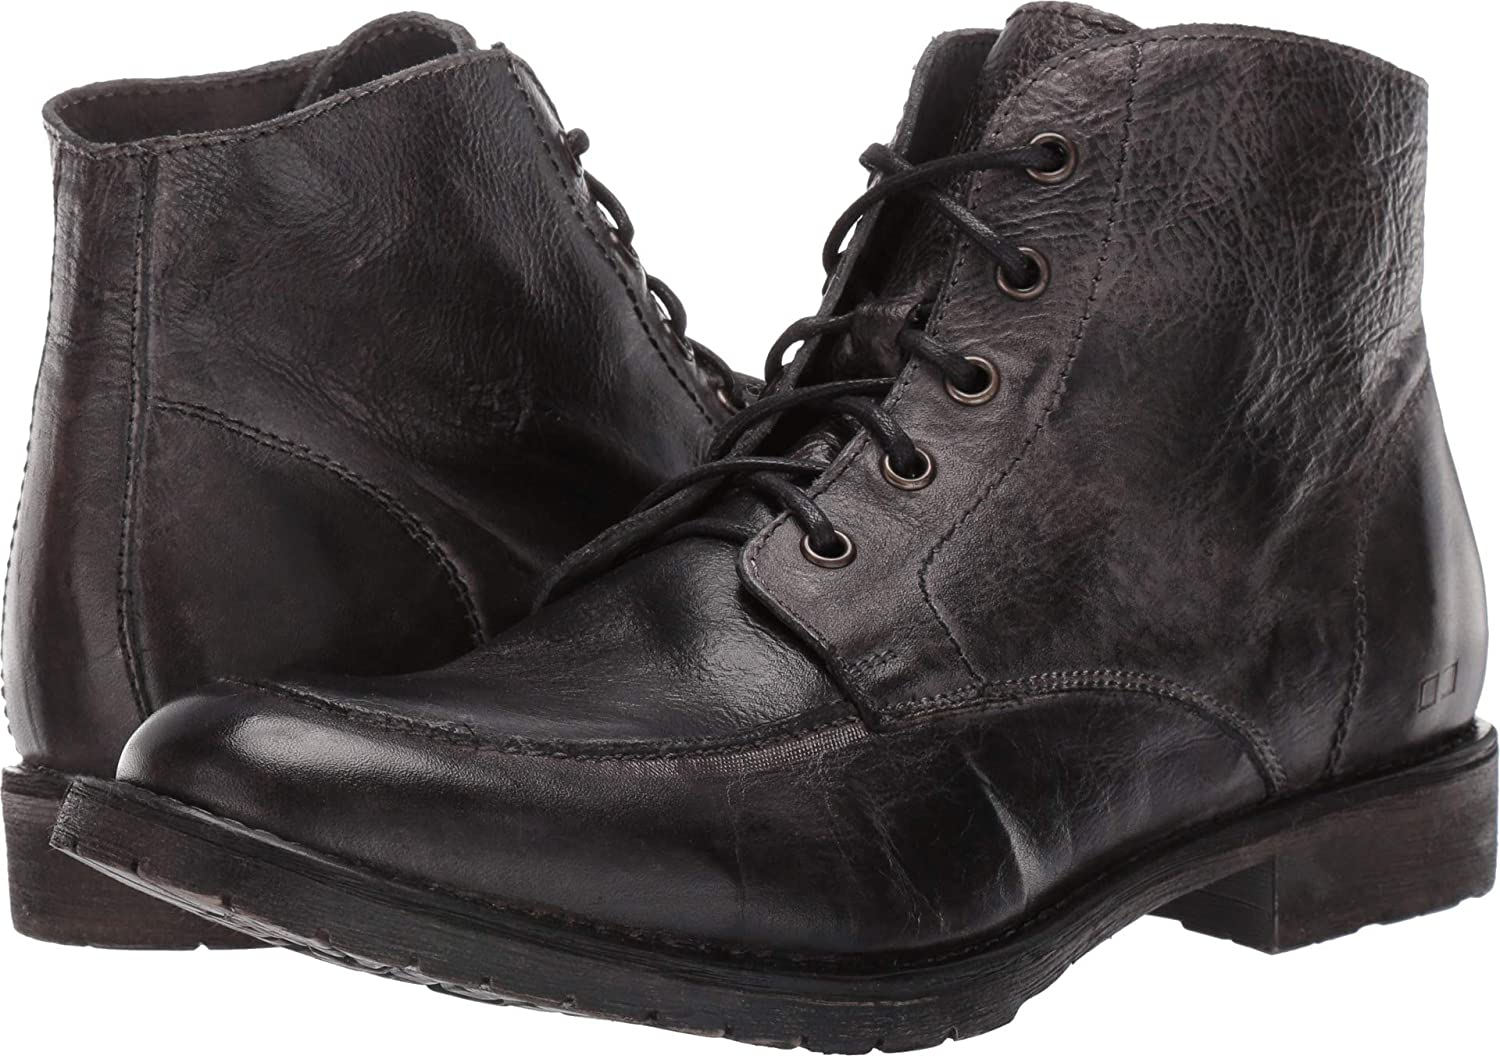 Graphito Dip-dye Bed Stu Men's Curtis II Leather Boot